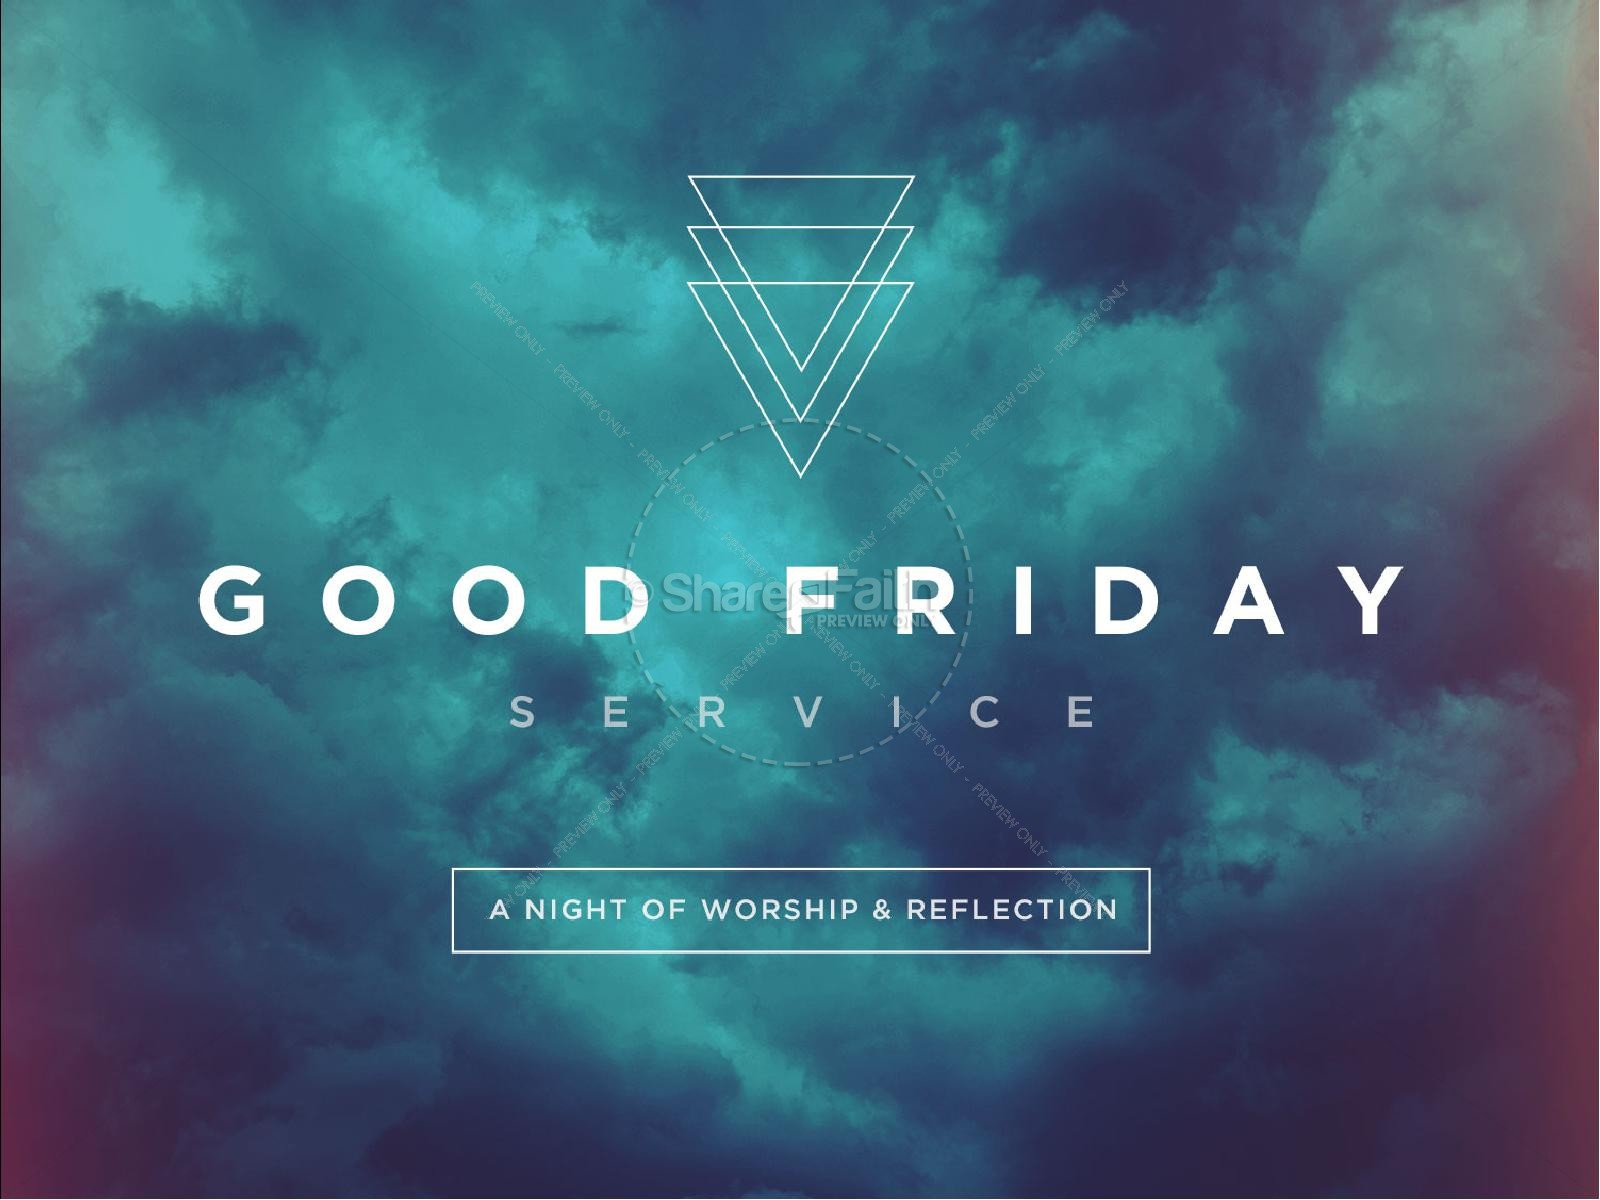 Good Friday Service PowerPoint